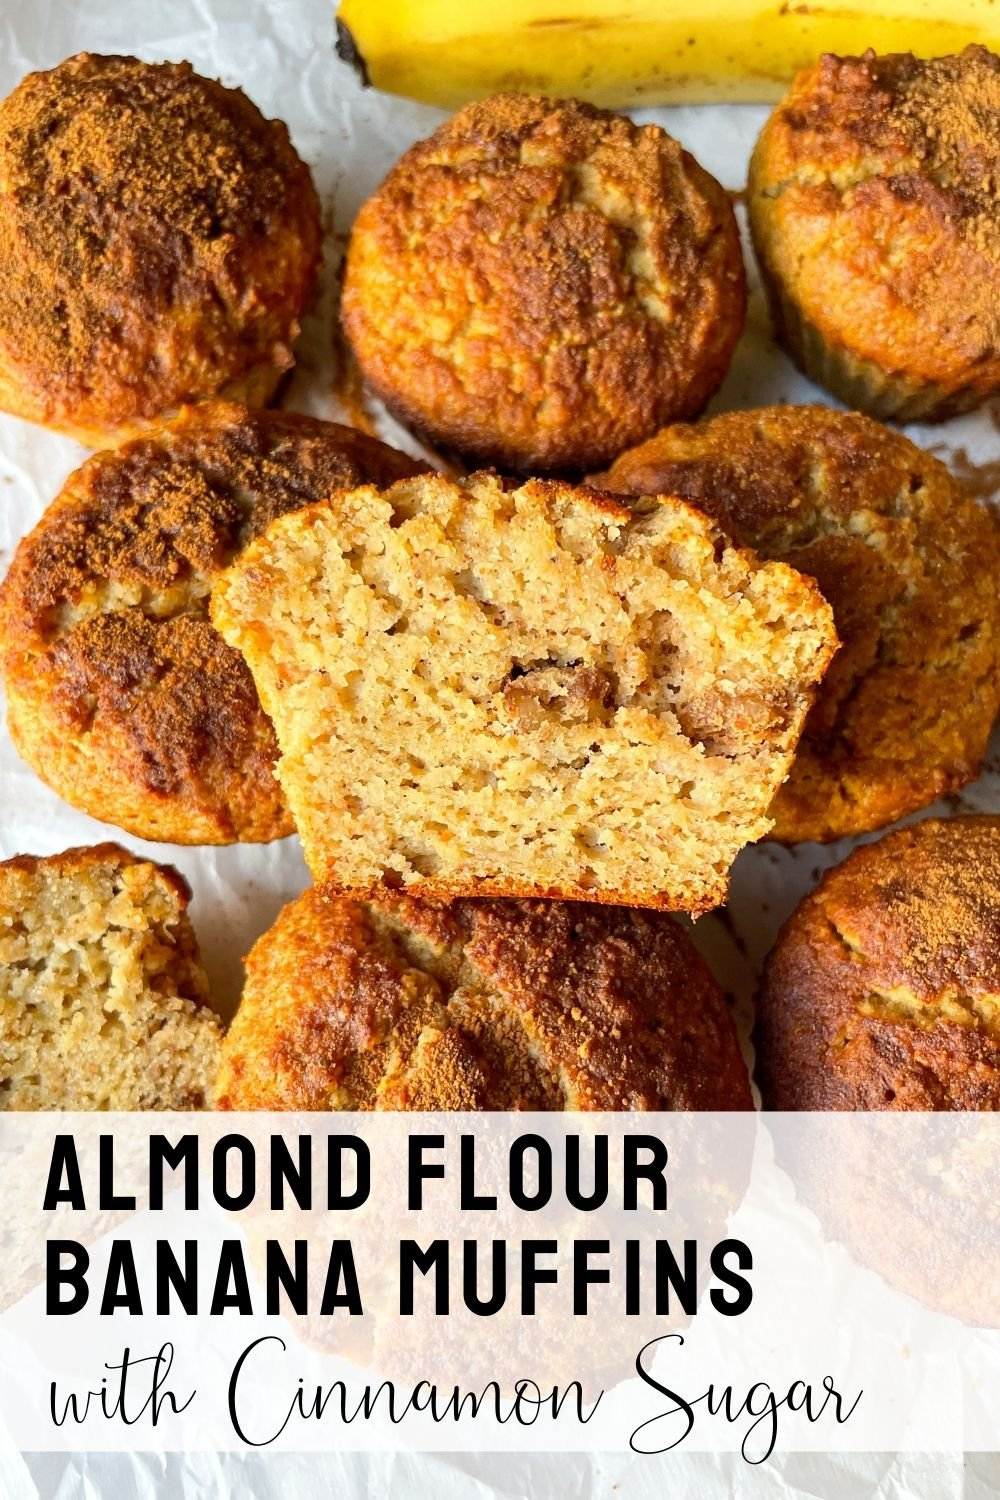 sliced almond flour banana muffins with text overlay